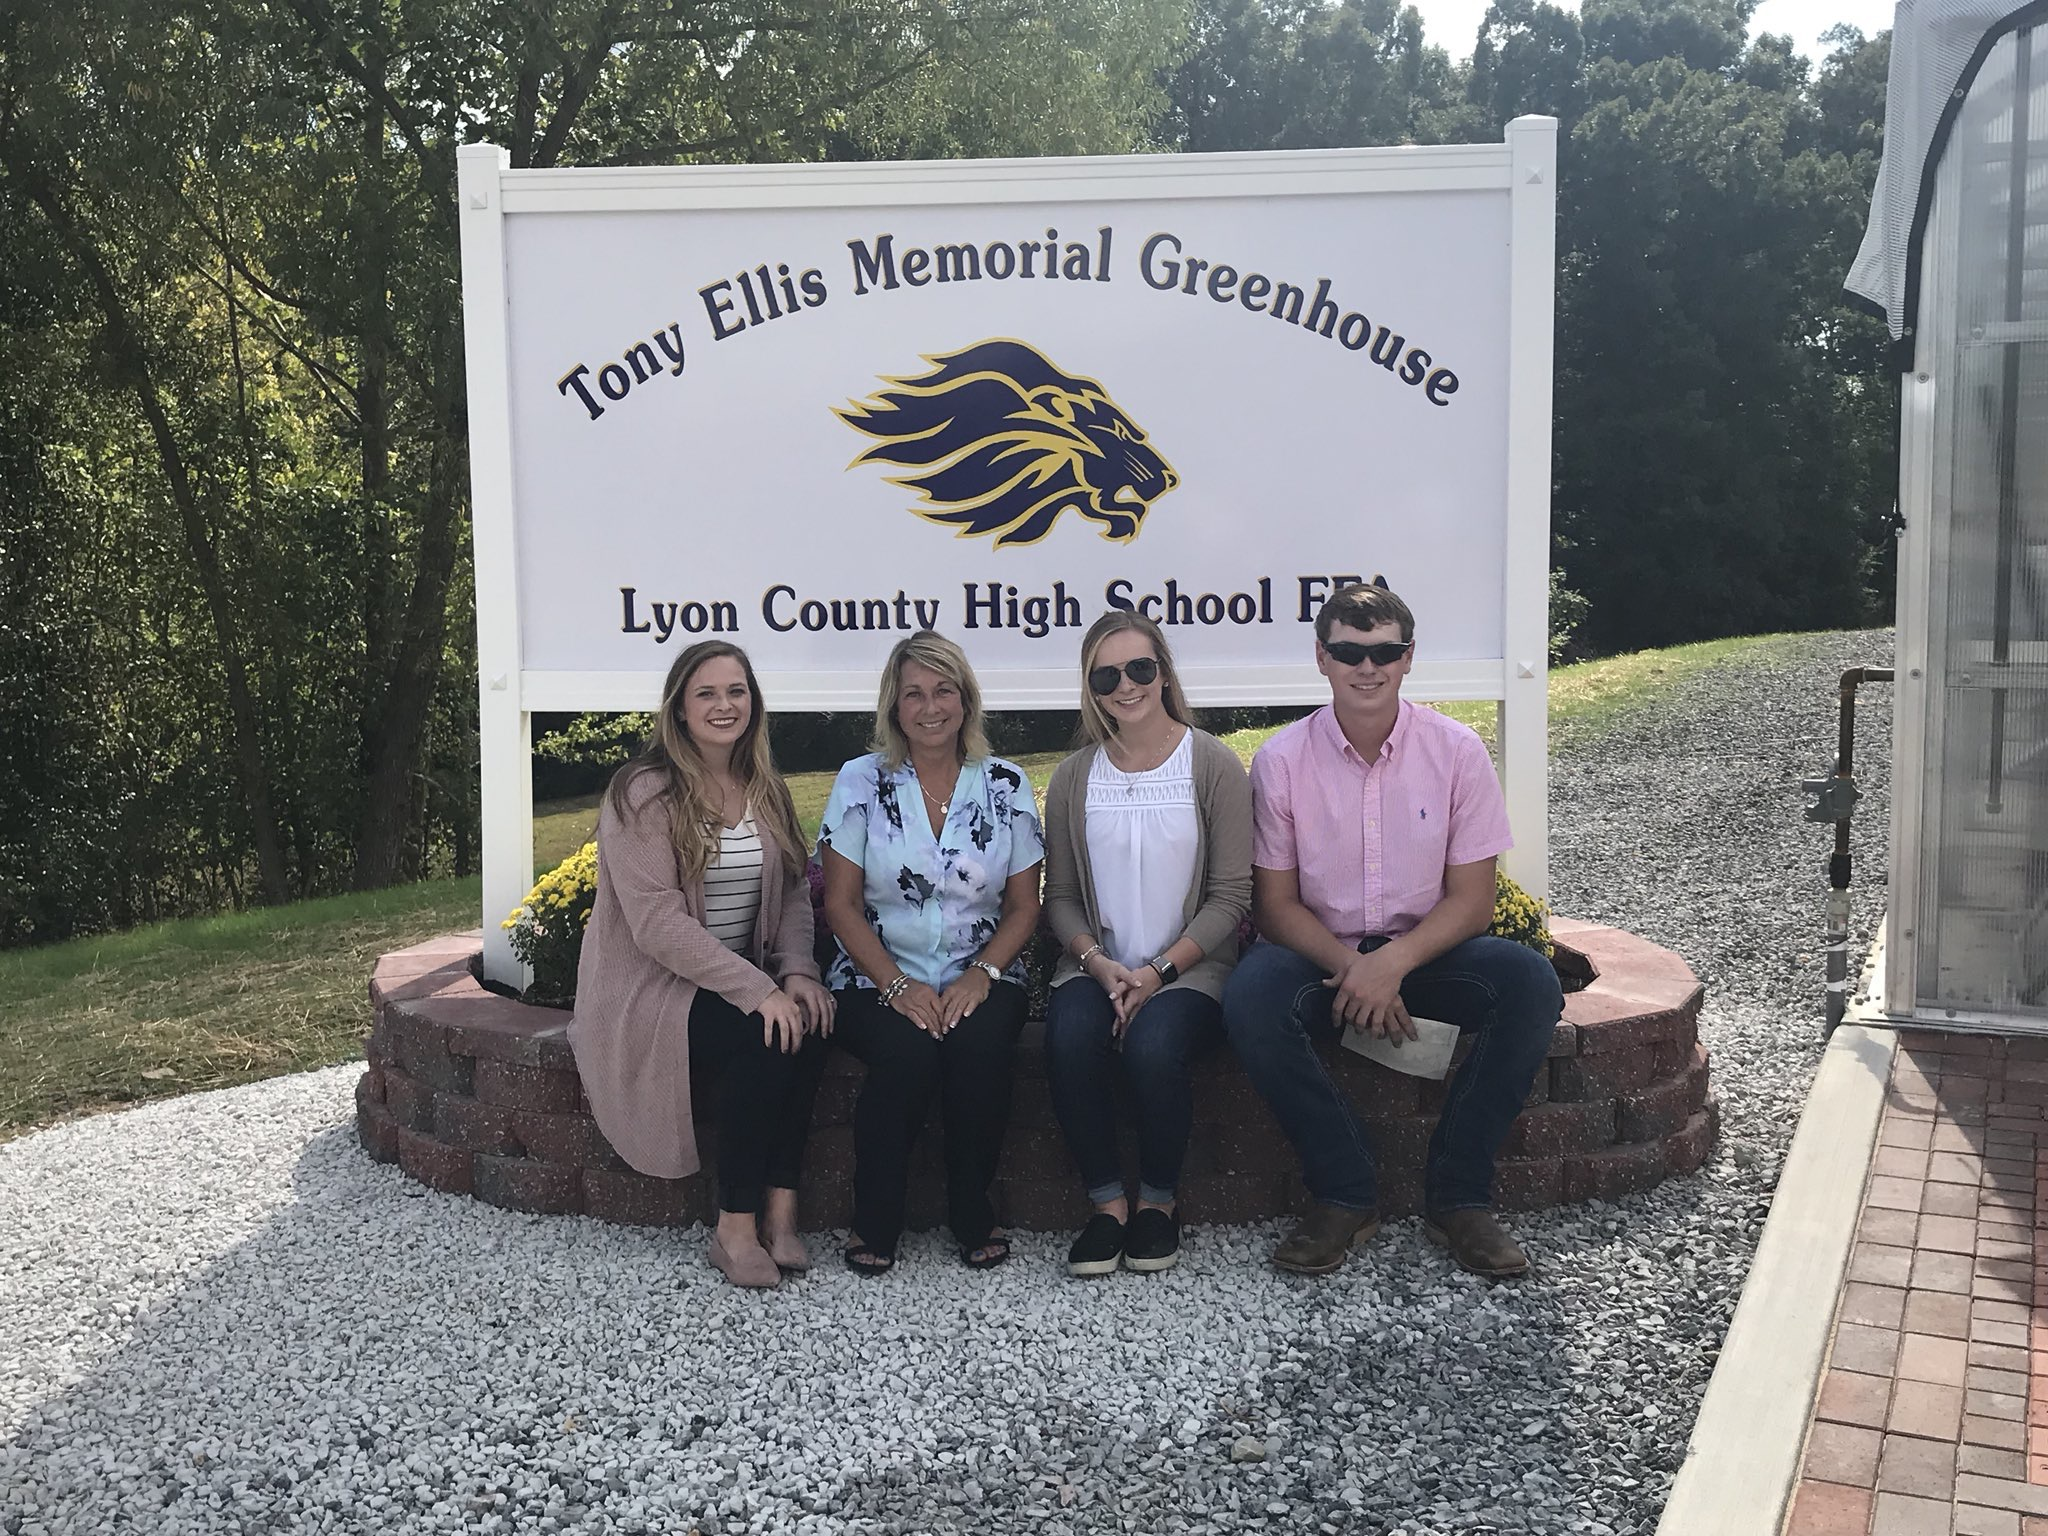 Anna Ellis, Debbie Ellis, Allison Ellis, and Avery Ellis sit in front of the Tony Ellis Memorial Greenhouse sign